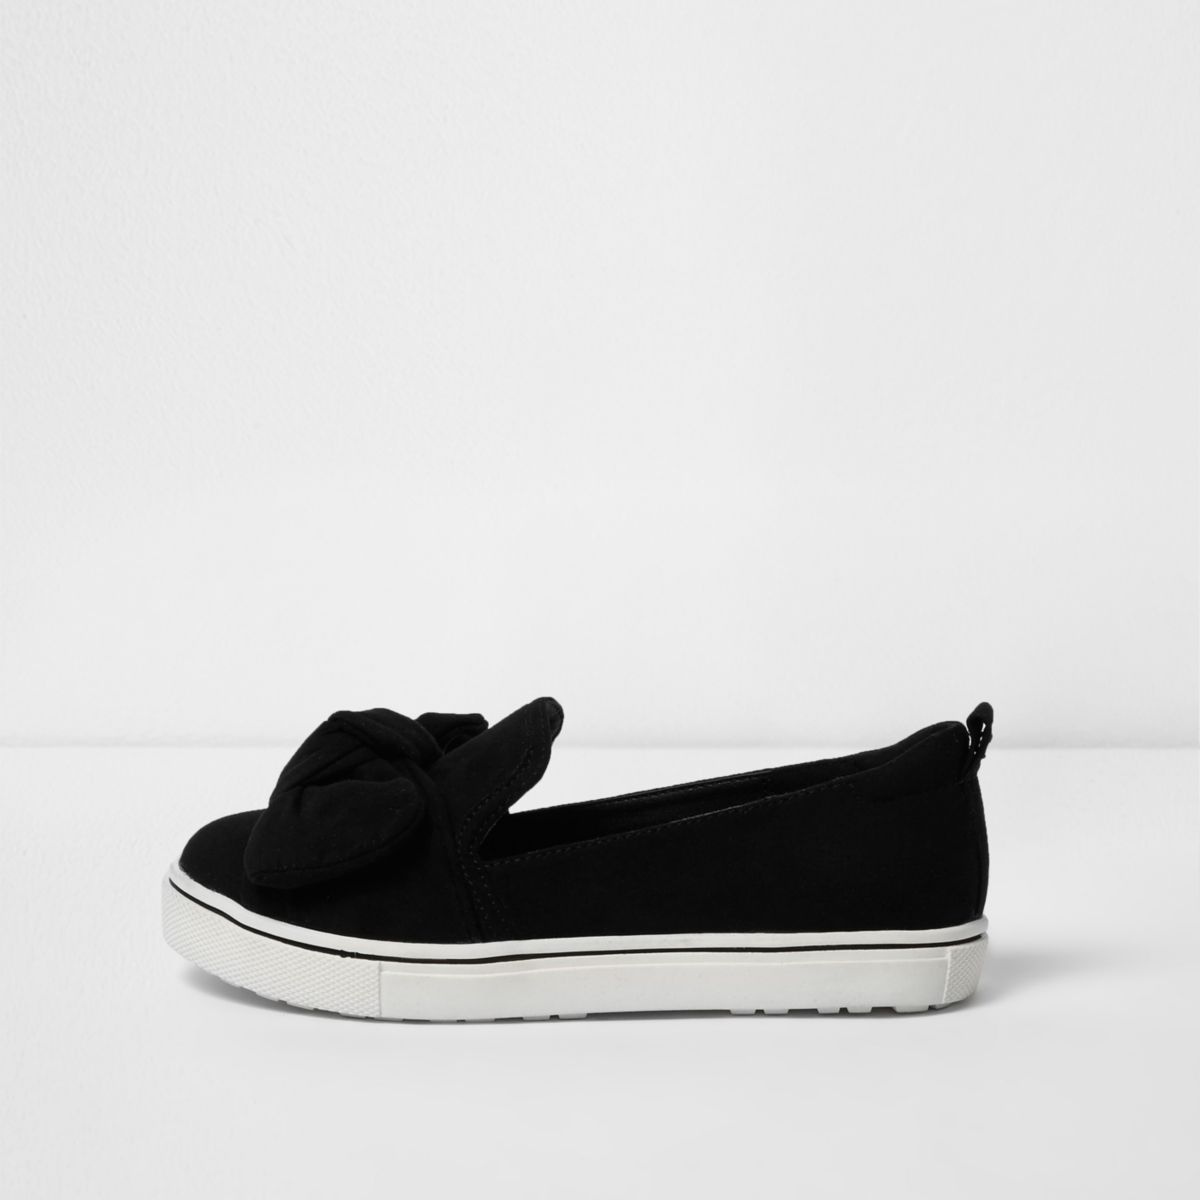 Girls black bow espadrille plimsolls